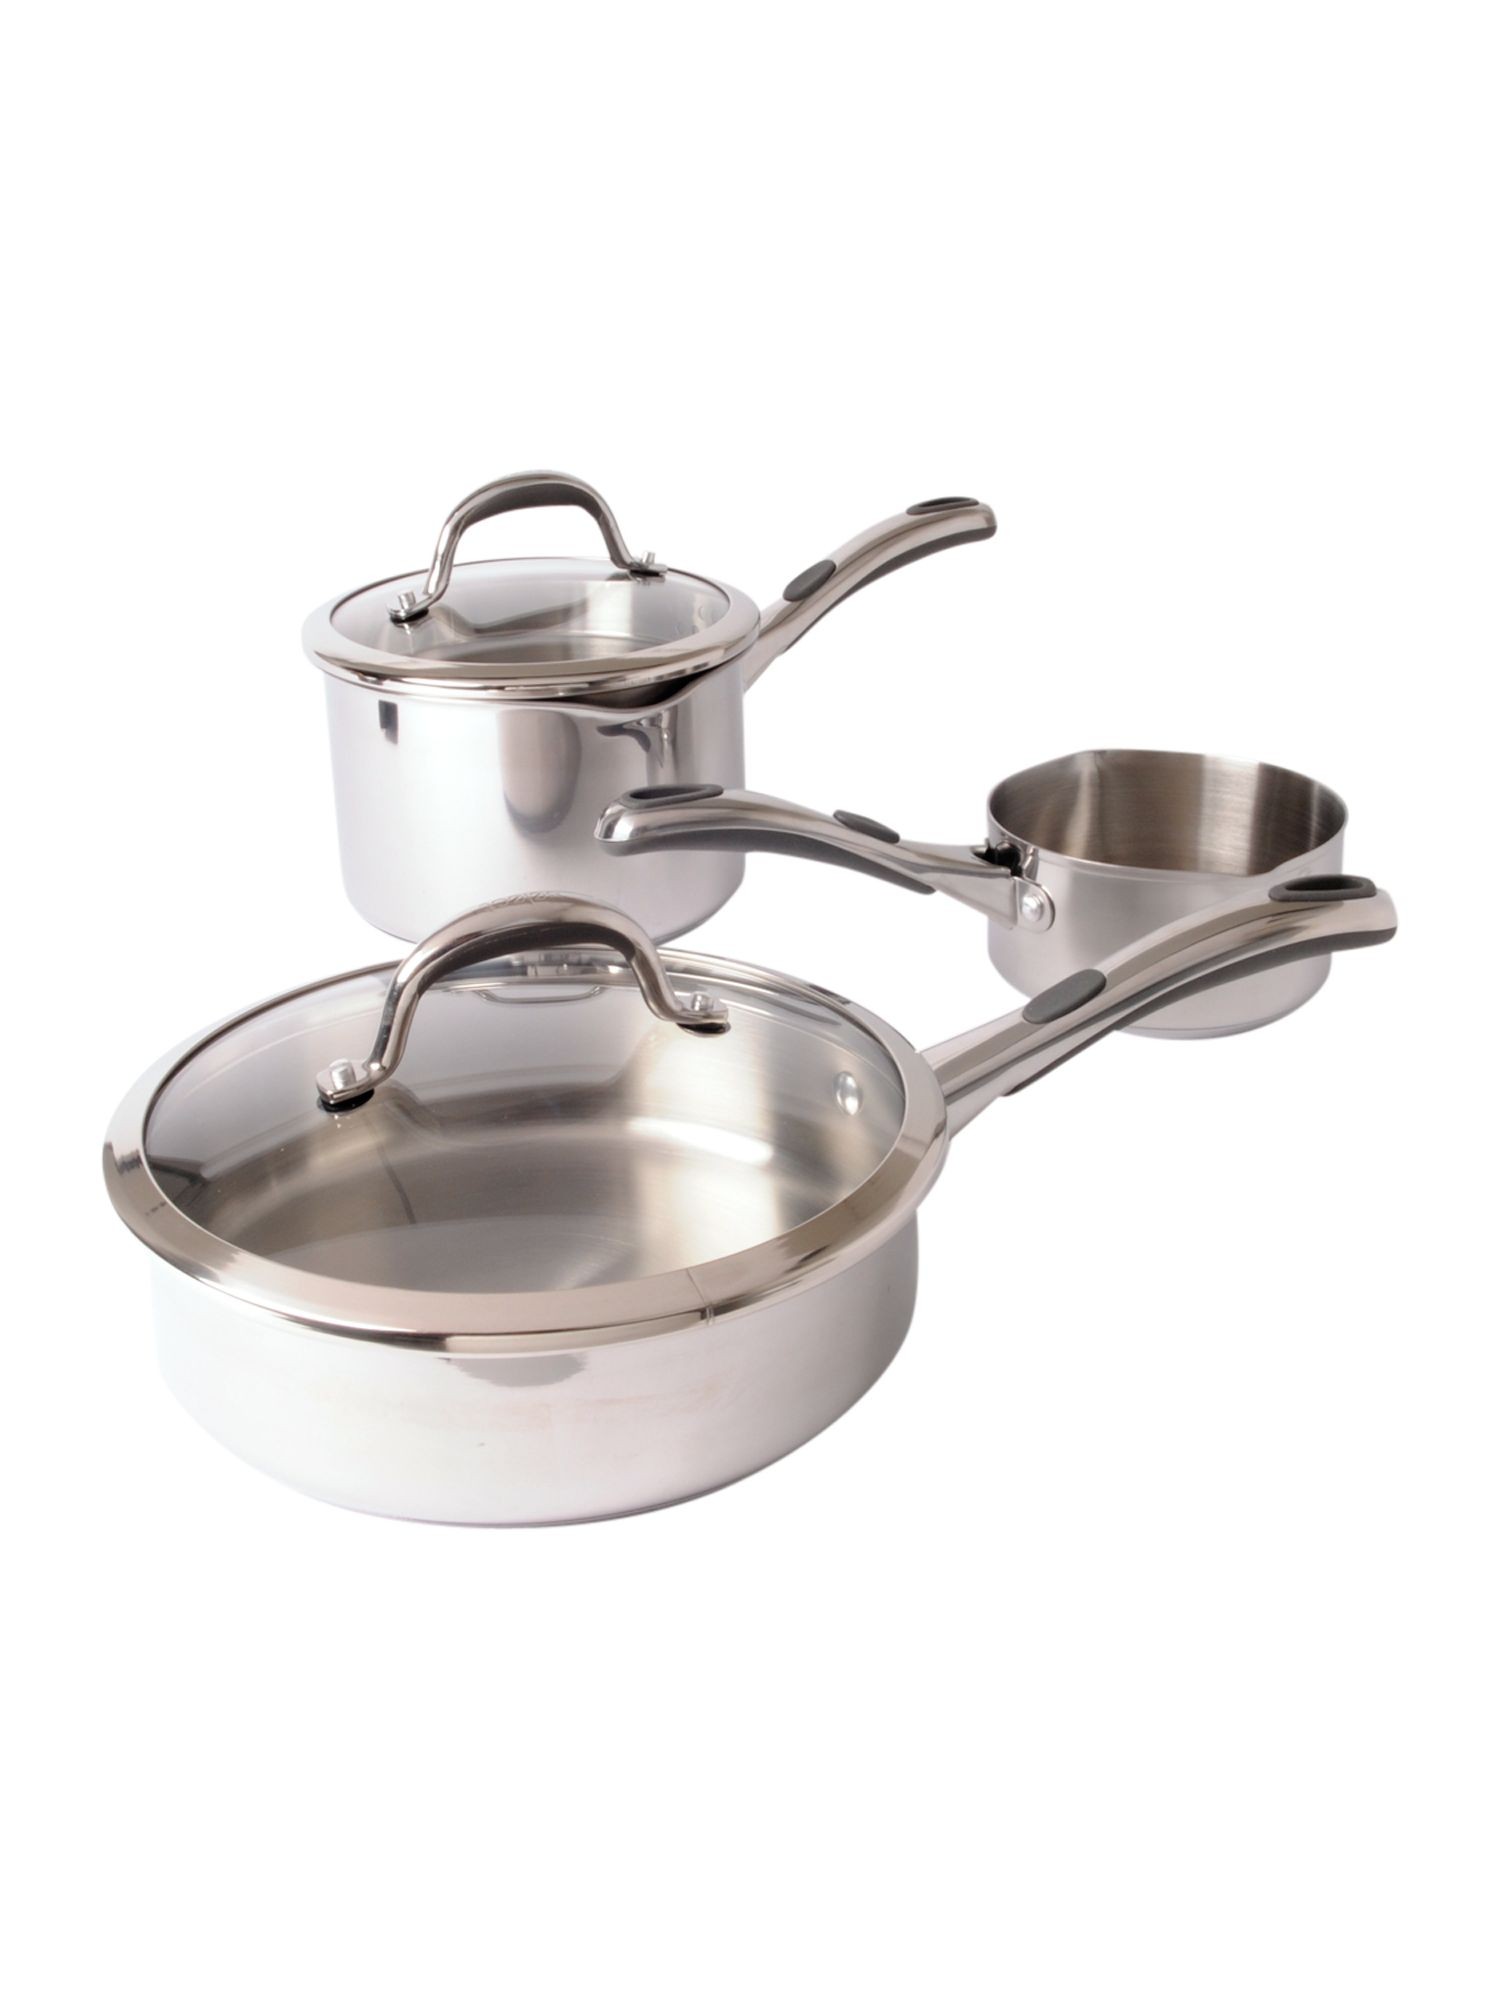 Select stainless steel pans